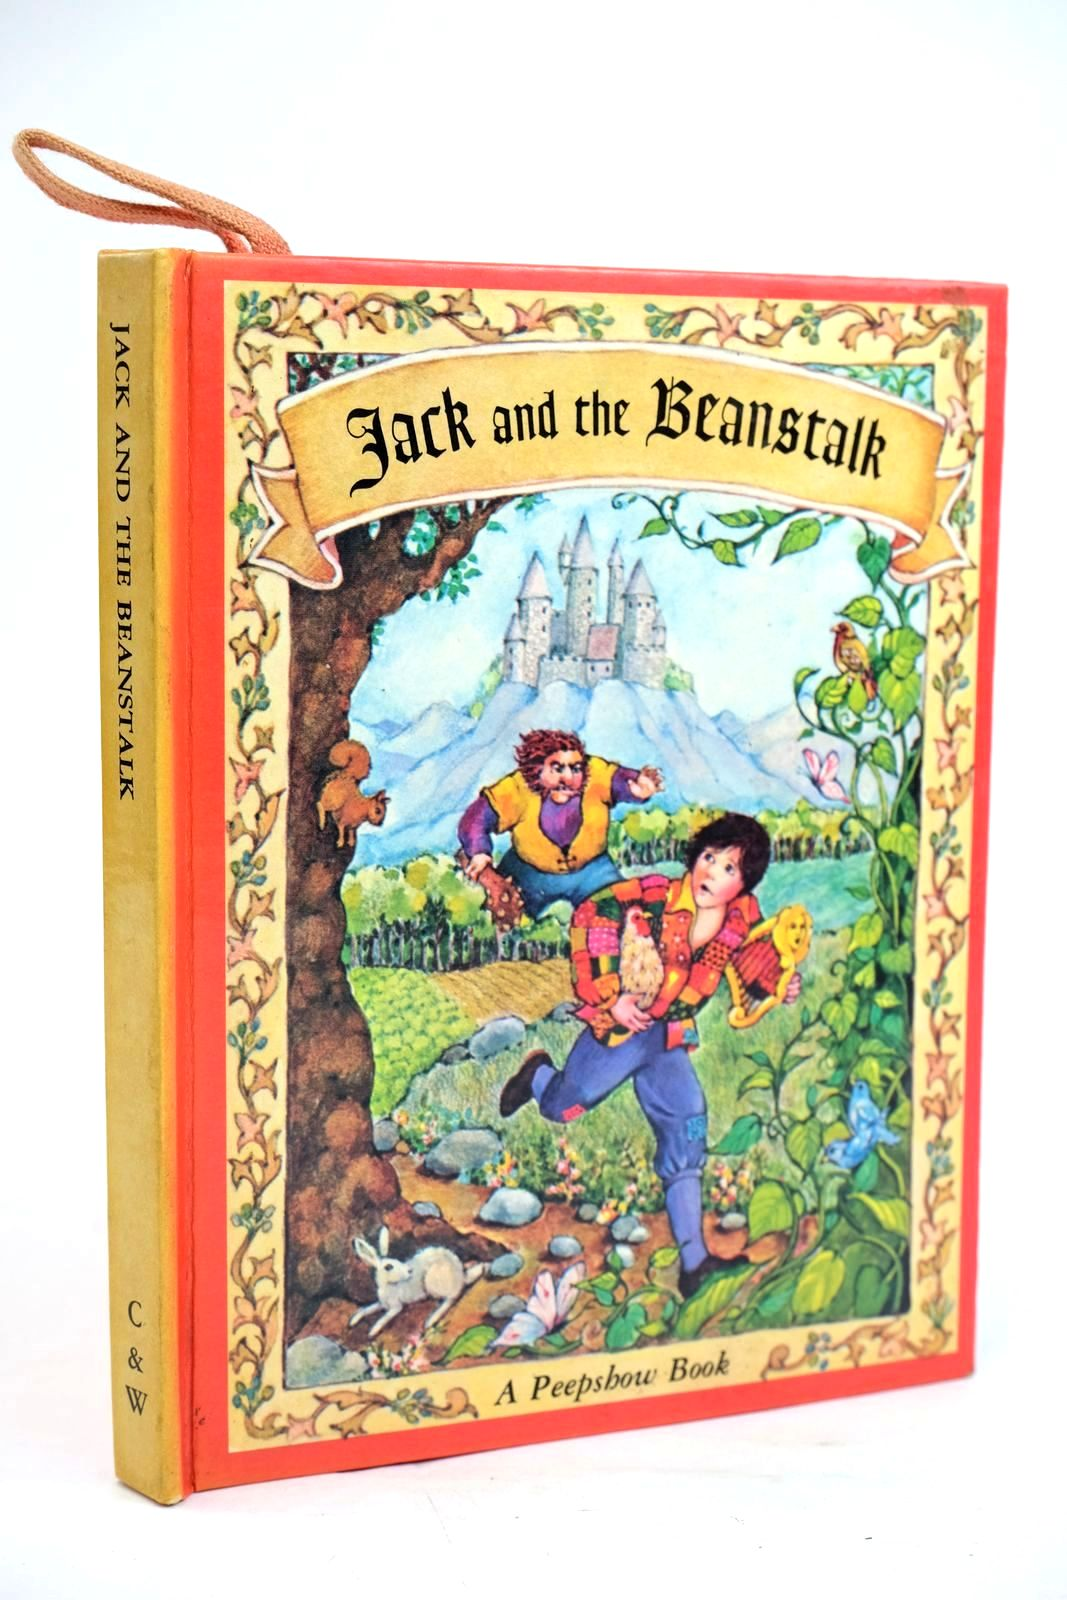 Photo of JACK AND THE BEANSTALK illustrated by Shepherd, Irana published by Chatto & Windus (STOCK CODE: 1319596)  for sale by Stella & Rose's Books